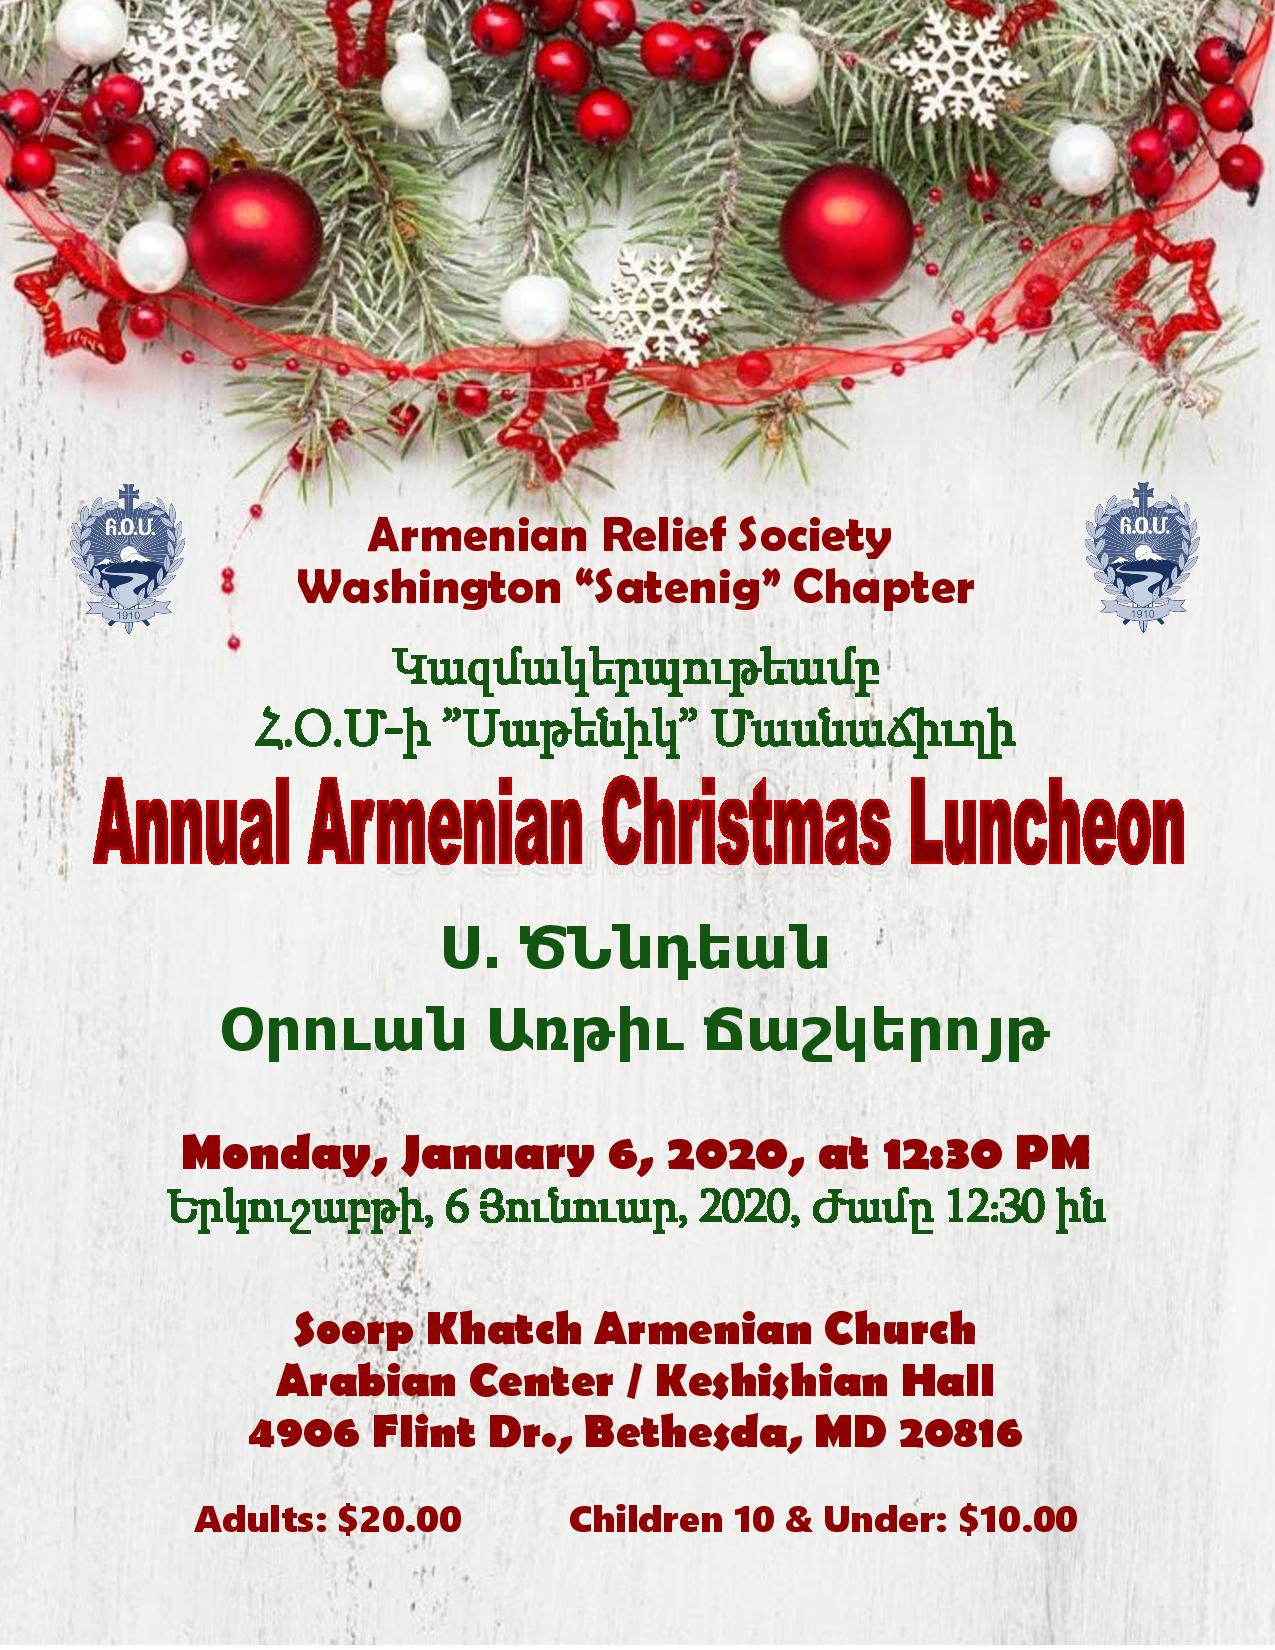 Christmas Luncheon 2020 Annual Armenian Christmas Luncheon – Soorp Khatch